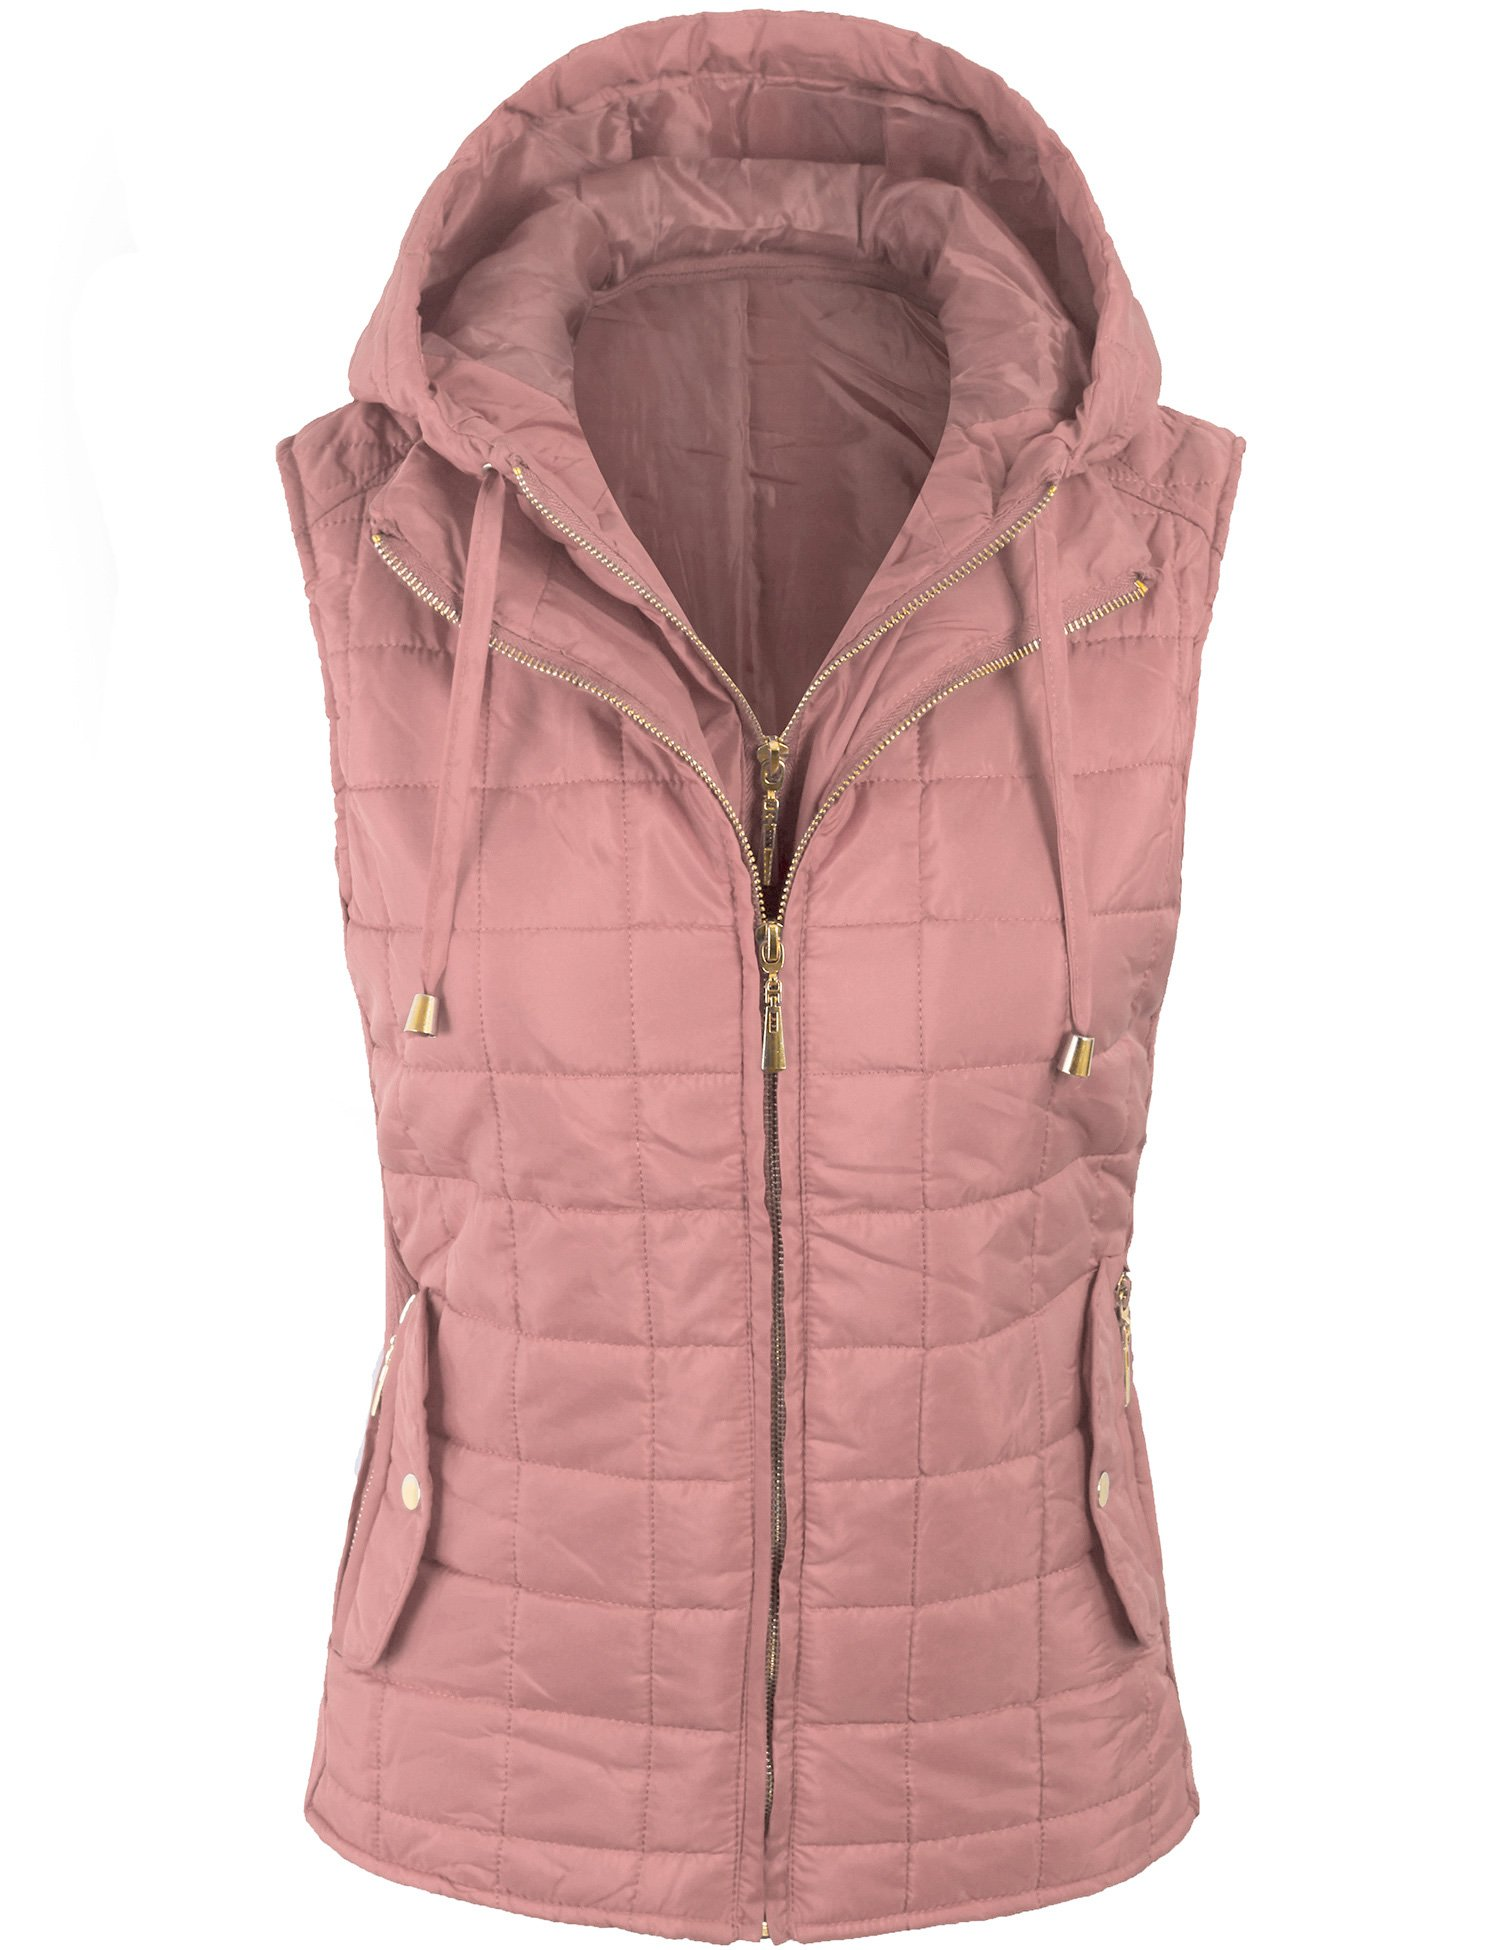 BOHENY Womens Quilted Fully Lined Lightweight Vest with Hoodie-S-Mauve_Hoodie